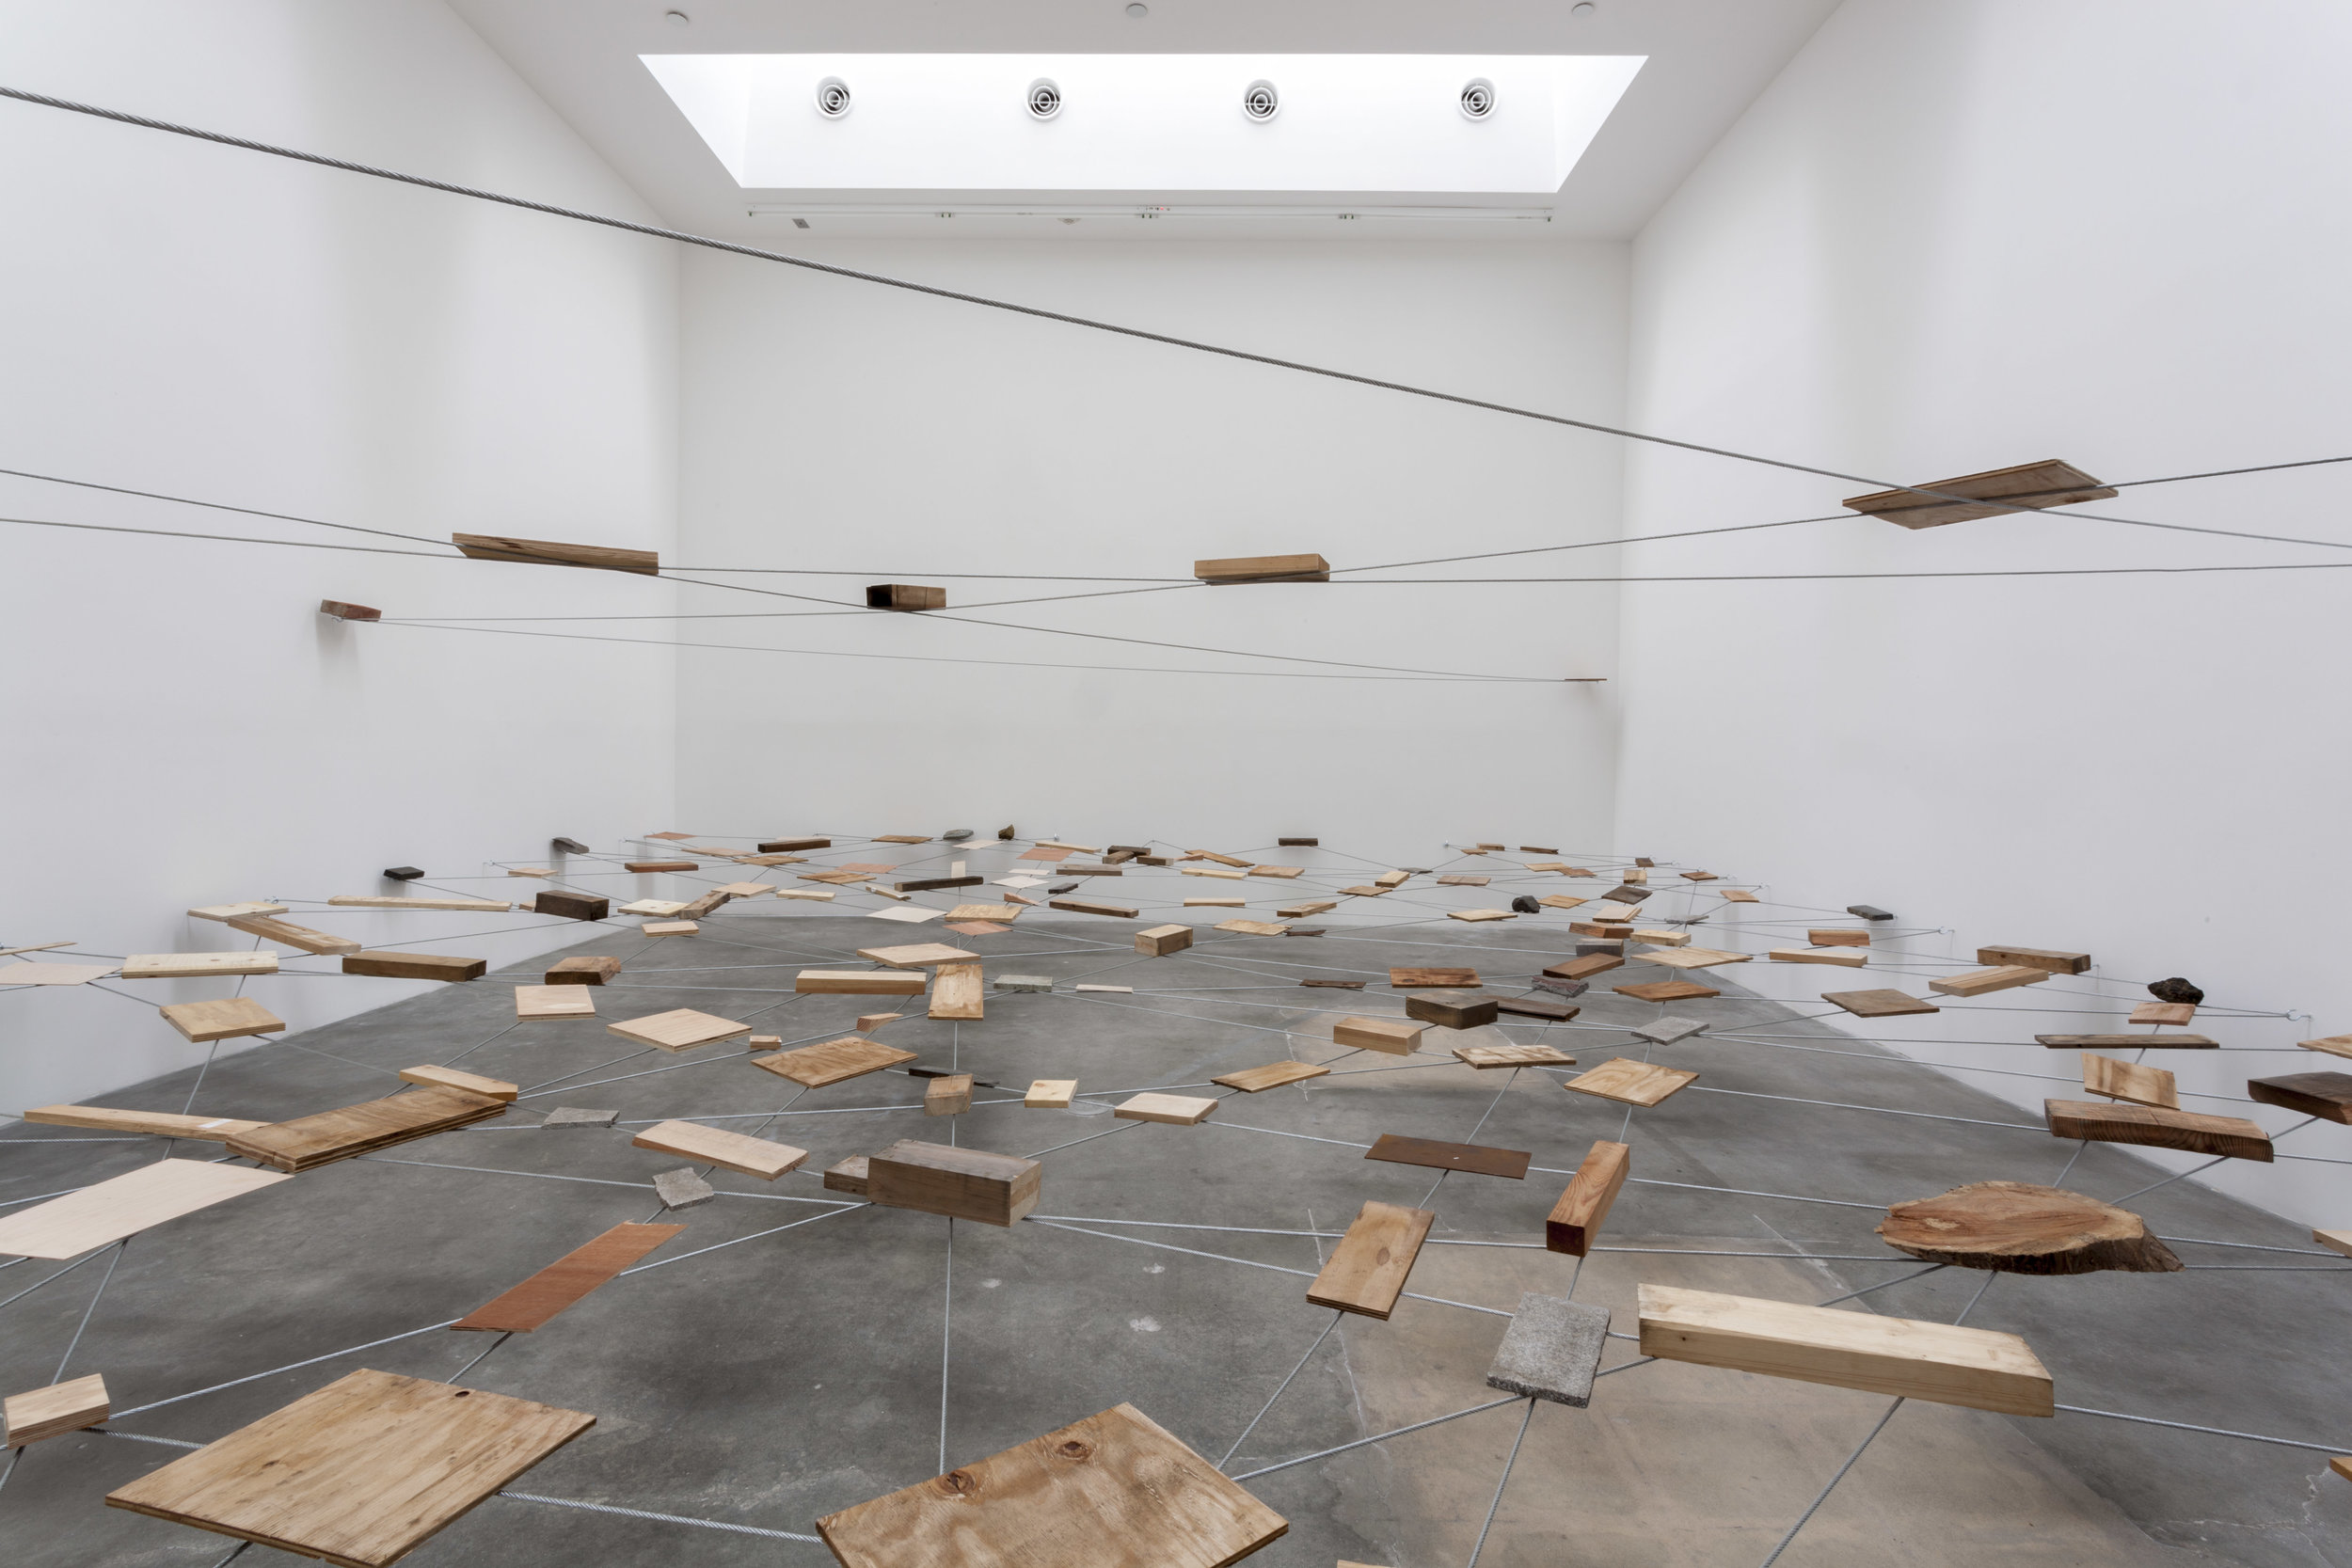 Left-Behind Situation , 1972/2012 捨置状況 ( Shachi Jōkyō ) Wood, stone, wire rope Dimensions variable Installation view, Blum & Poe, Los Angeles, 2012 Courtesy Blum & Poe, Los Angeles / New York / Tokyo